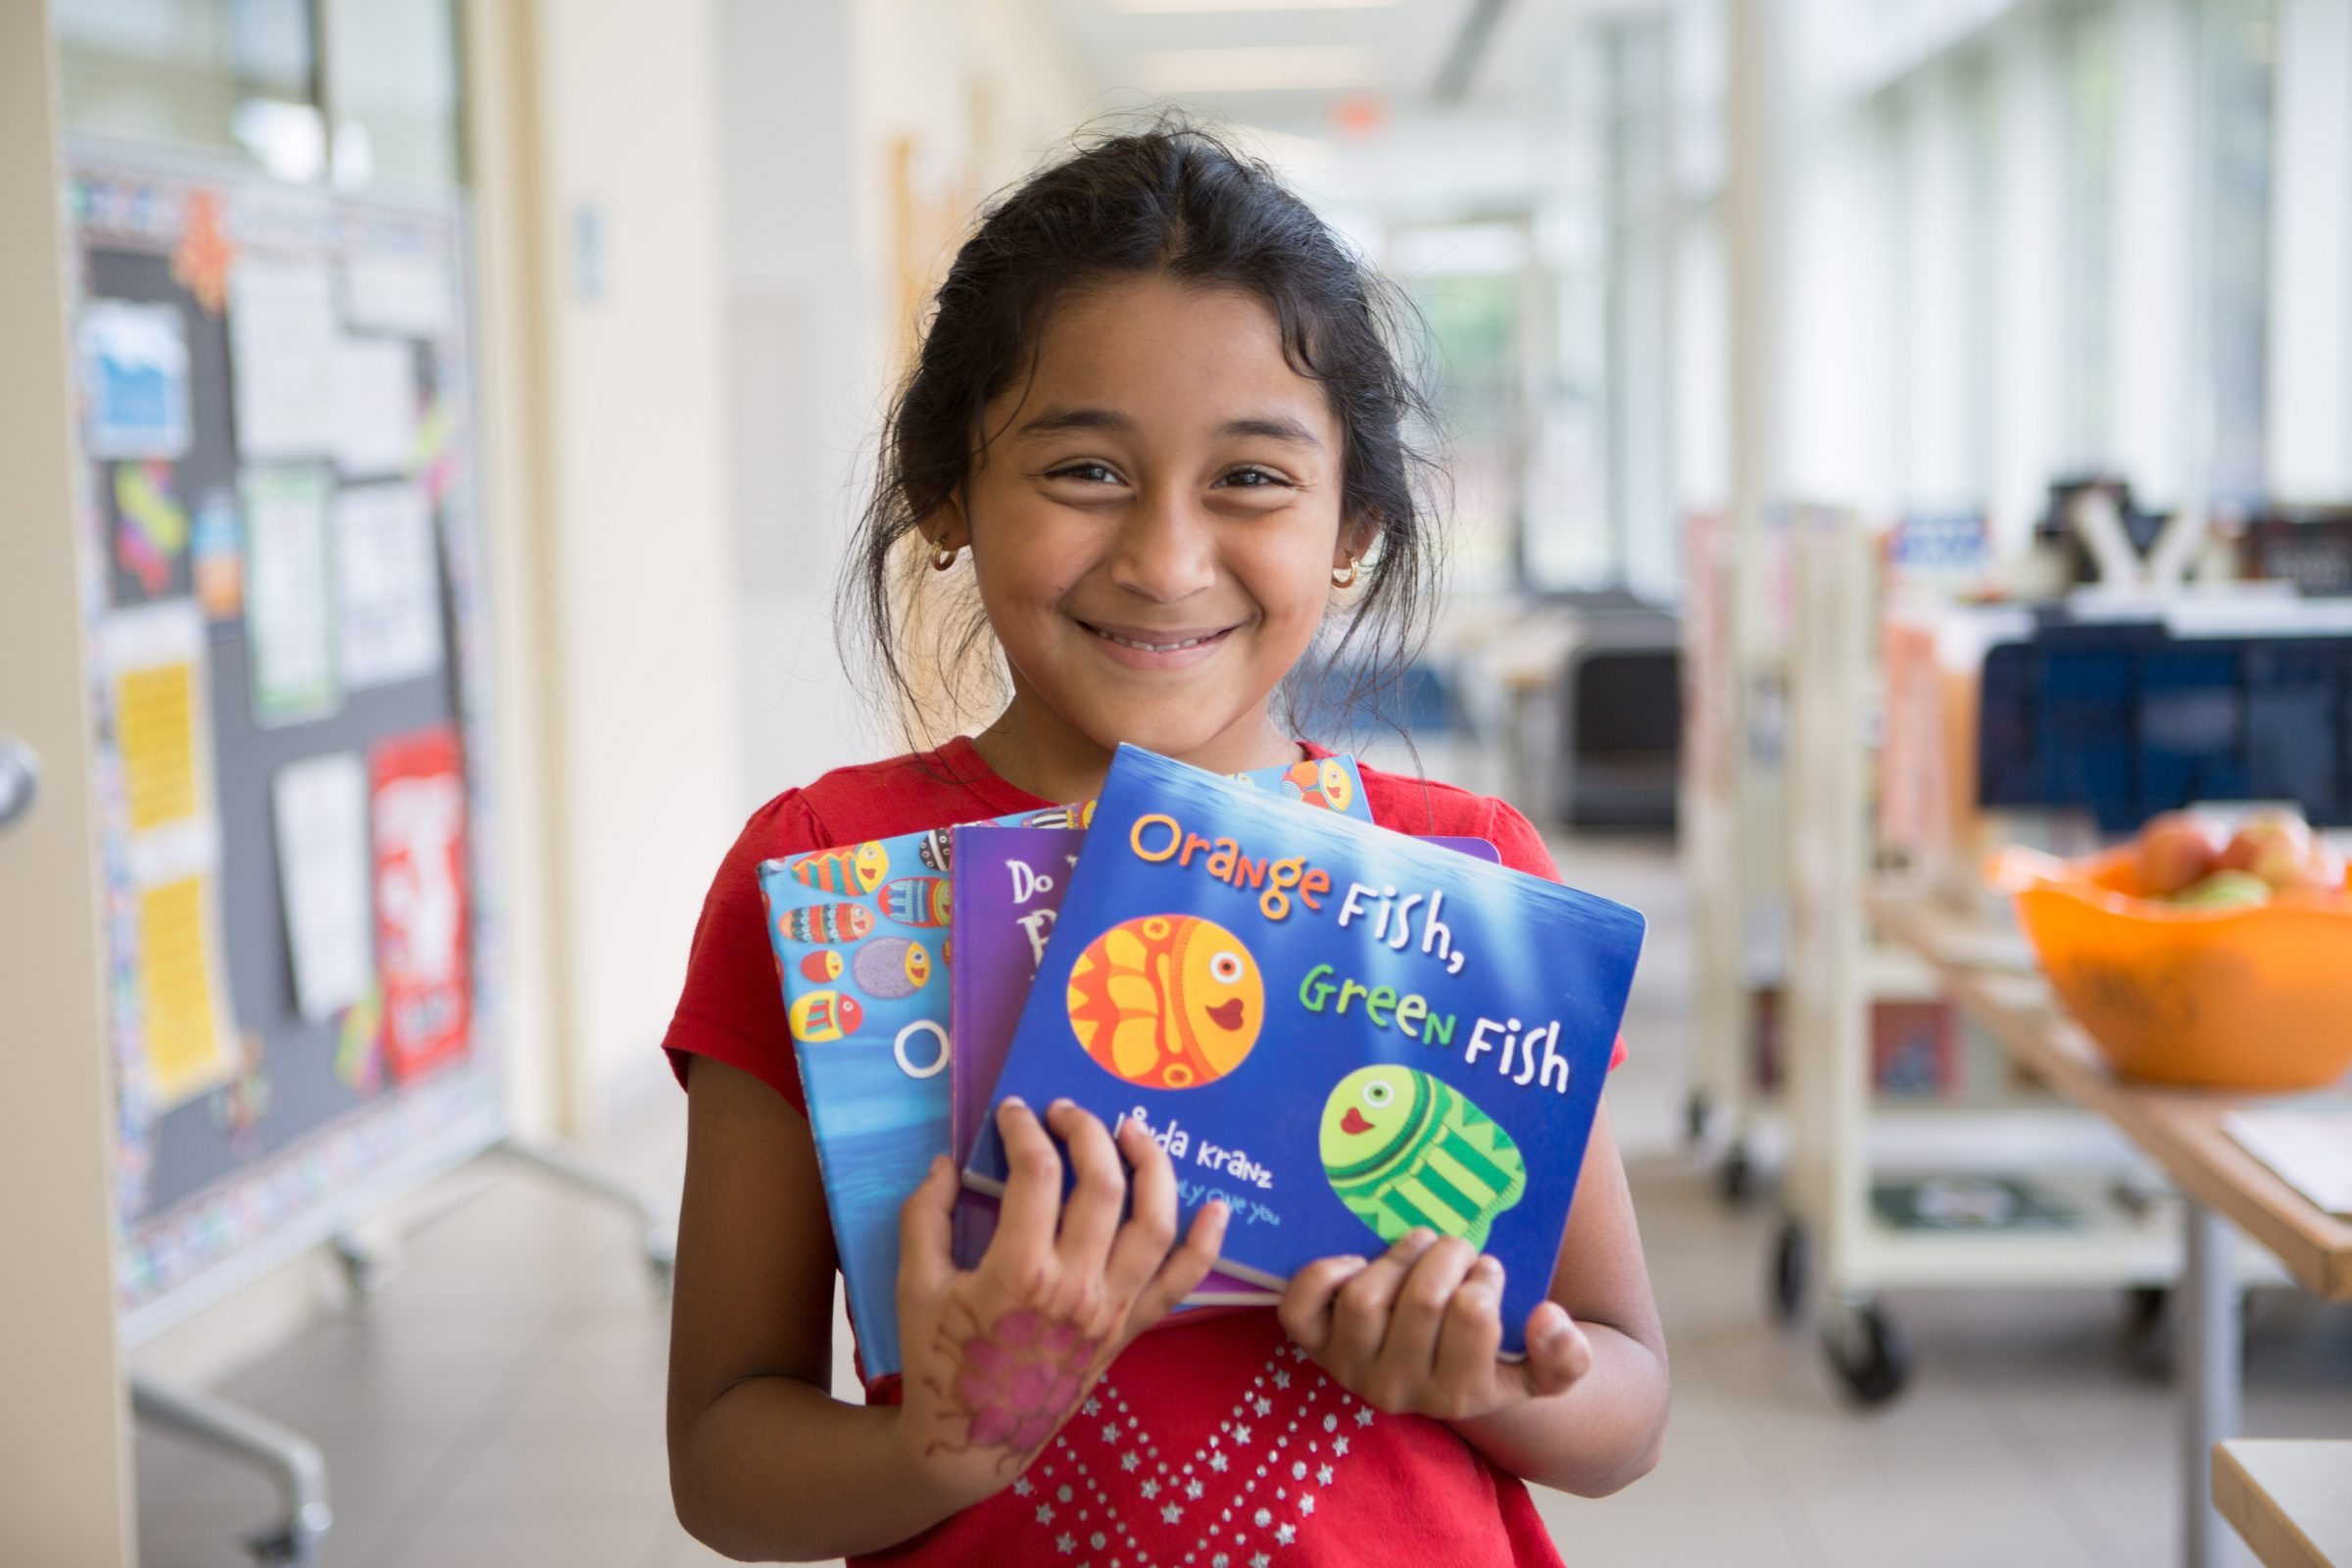 Smiling NHR student displays books she received in a giveaway.